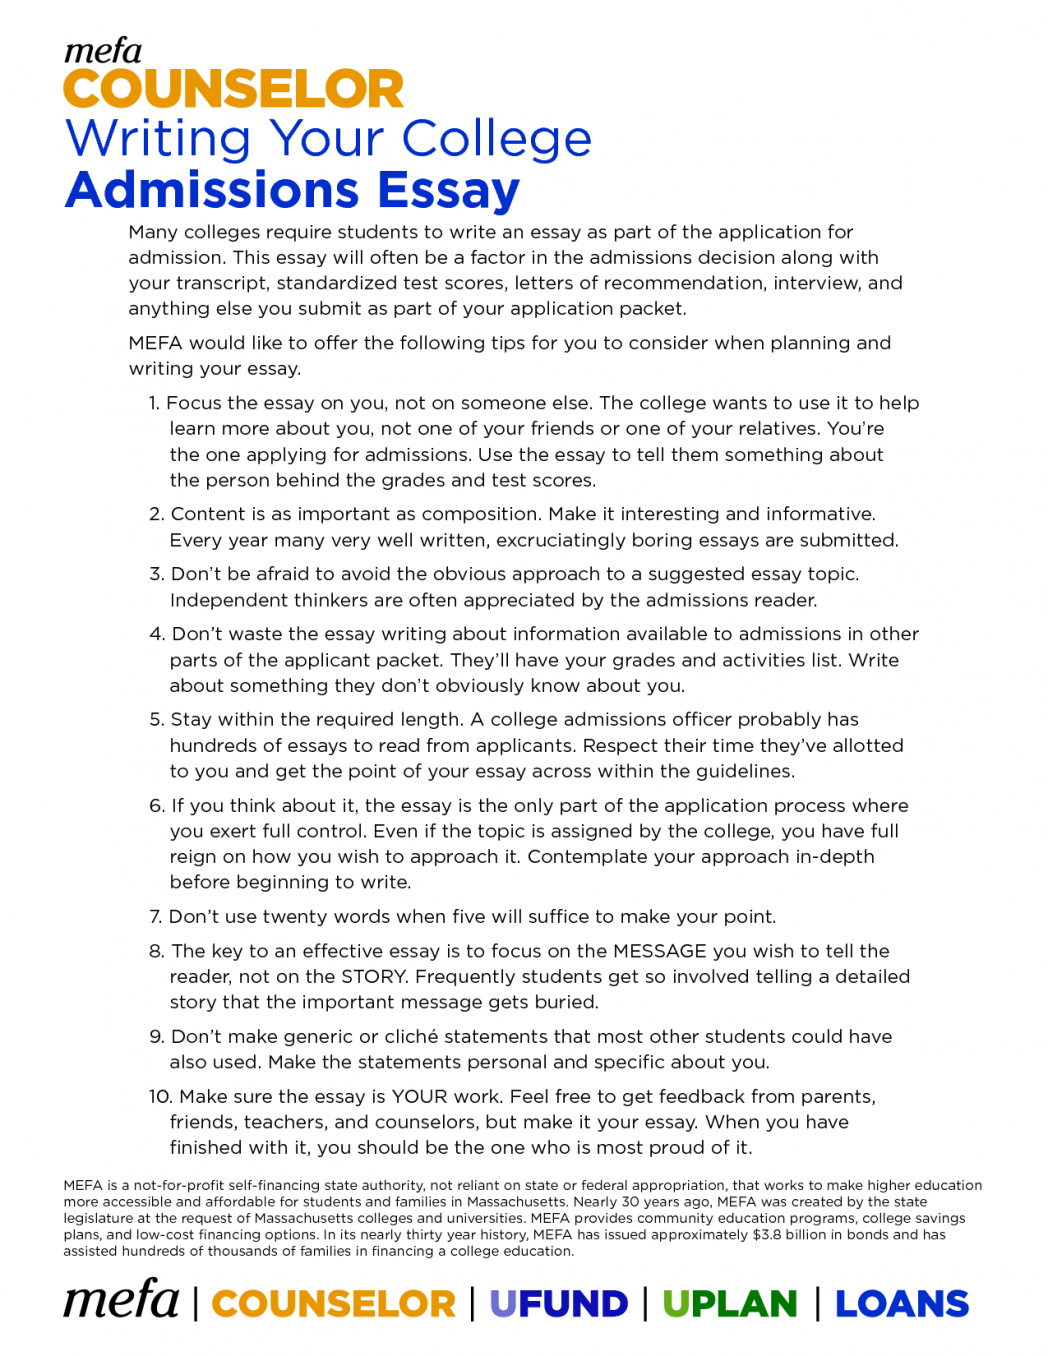 016 Essay Example College Writing Help High School How Many Paragraphs Should Application Wuaom Pages Words Long What About Formatted In Mla Format 1048x1356 Are An Unforgettable Informative Body Needed Full